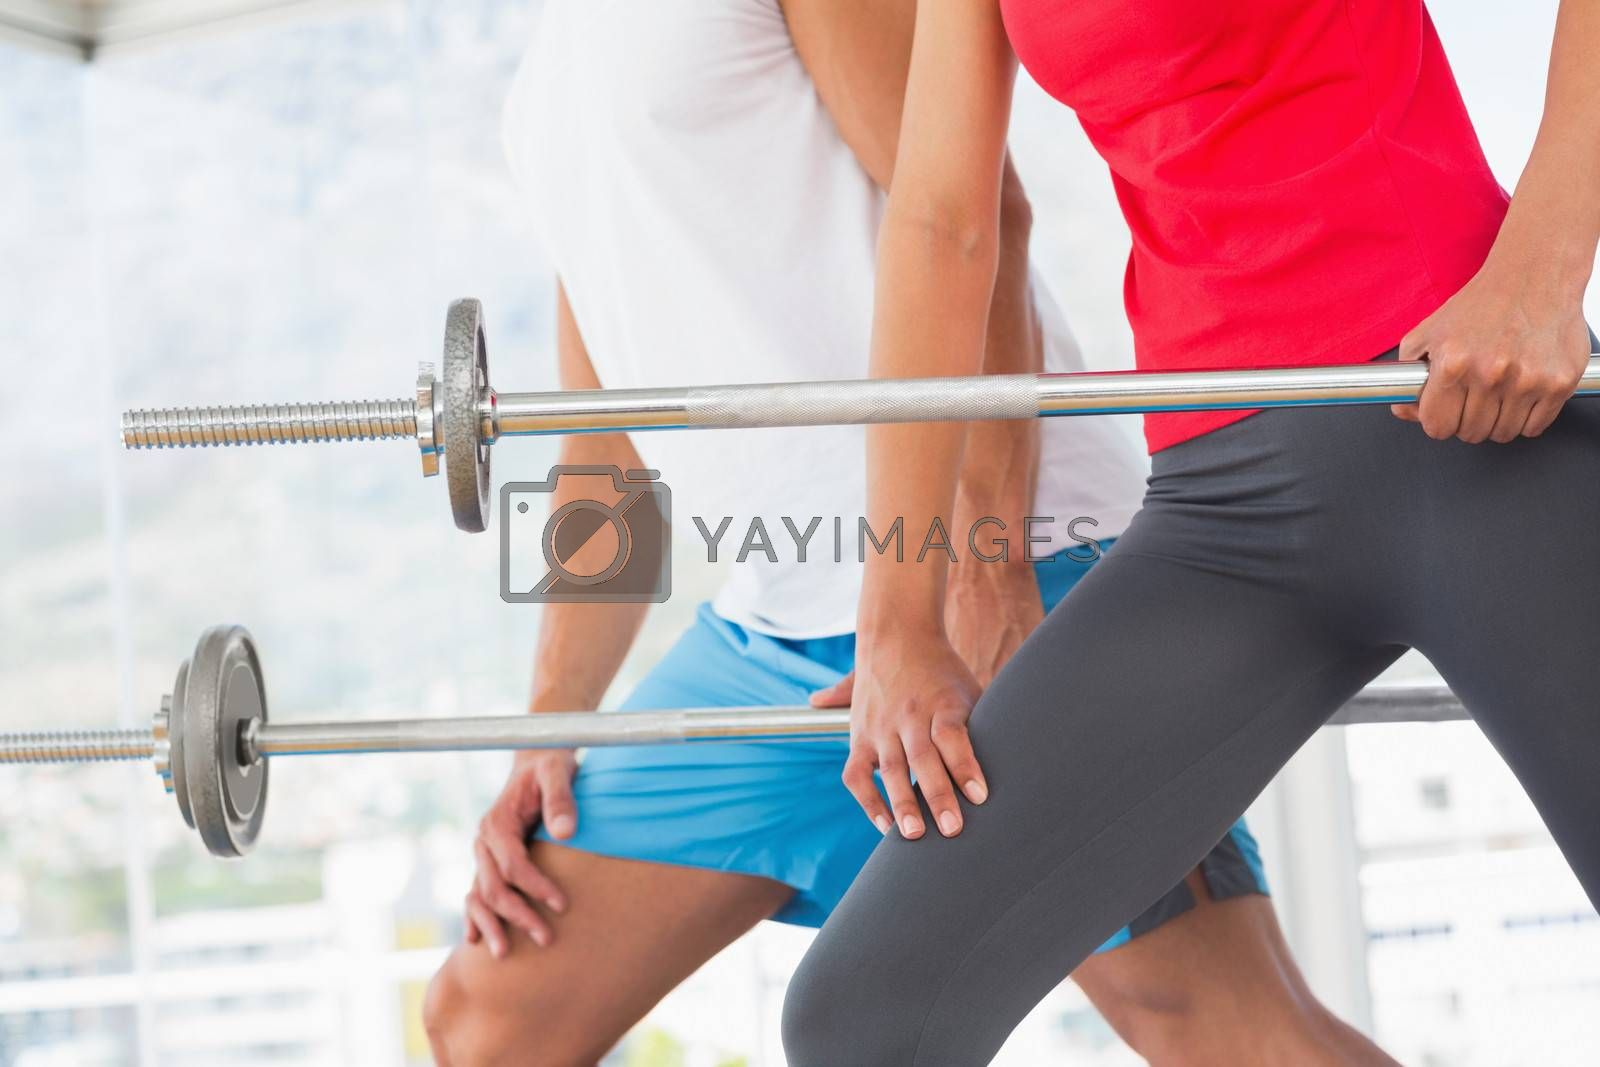 Mid section of fit young man and woman holding barbells in the gym